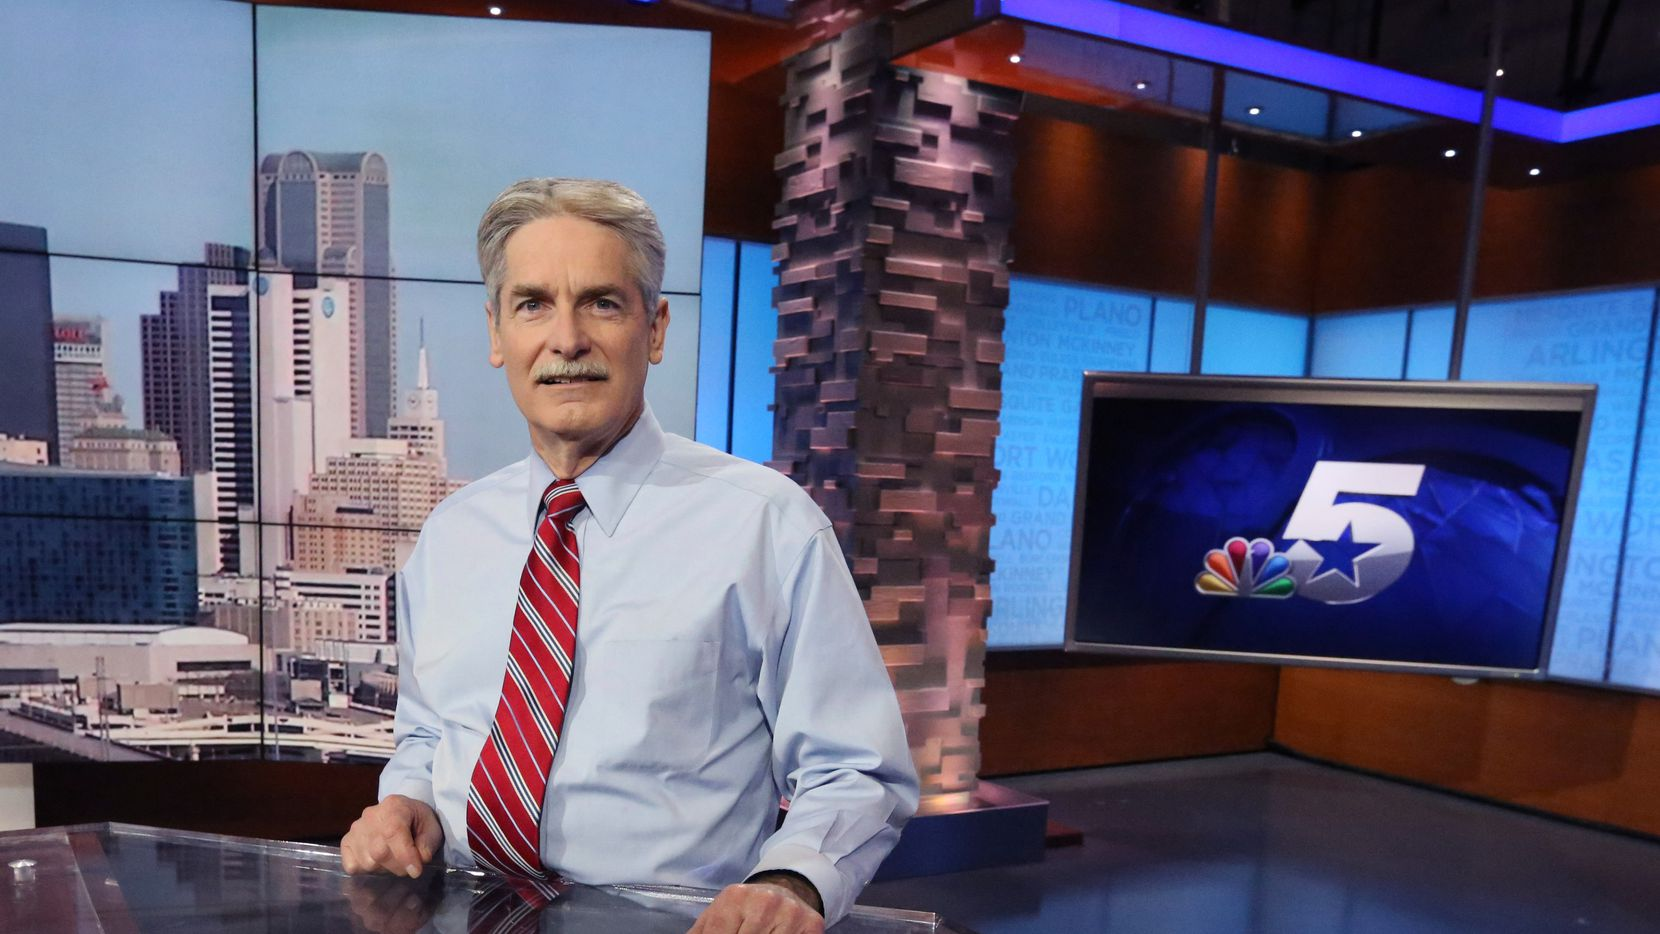 KXAS 5 NBC meteorologist David Finfrock is pictured at the station in Fort Worth, Texas on Thursday, January 25, 2018. (Louis DeLuca/The Dallas Morning News)